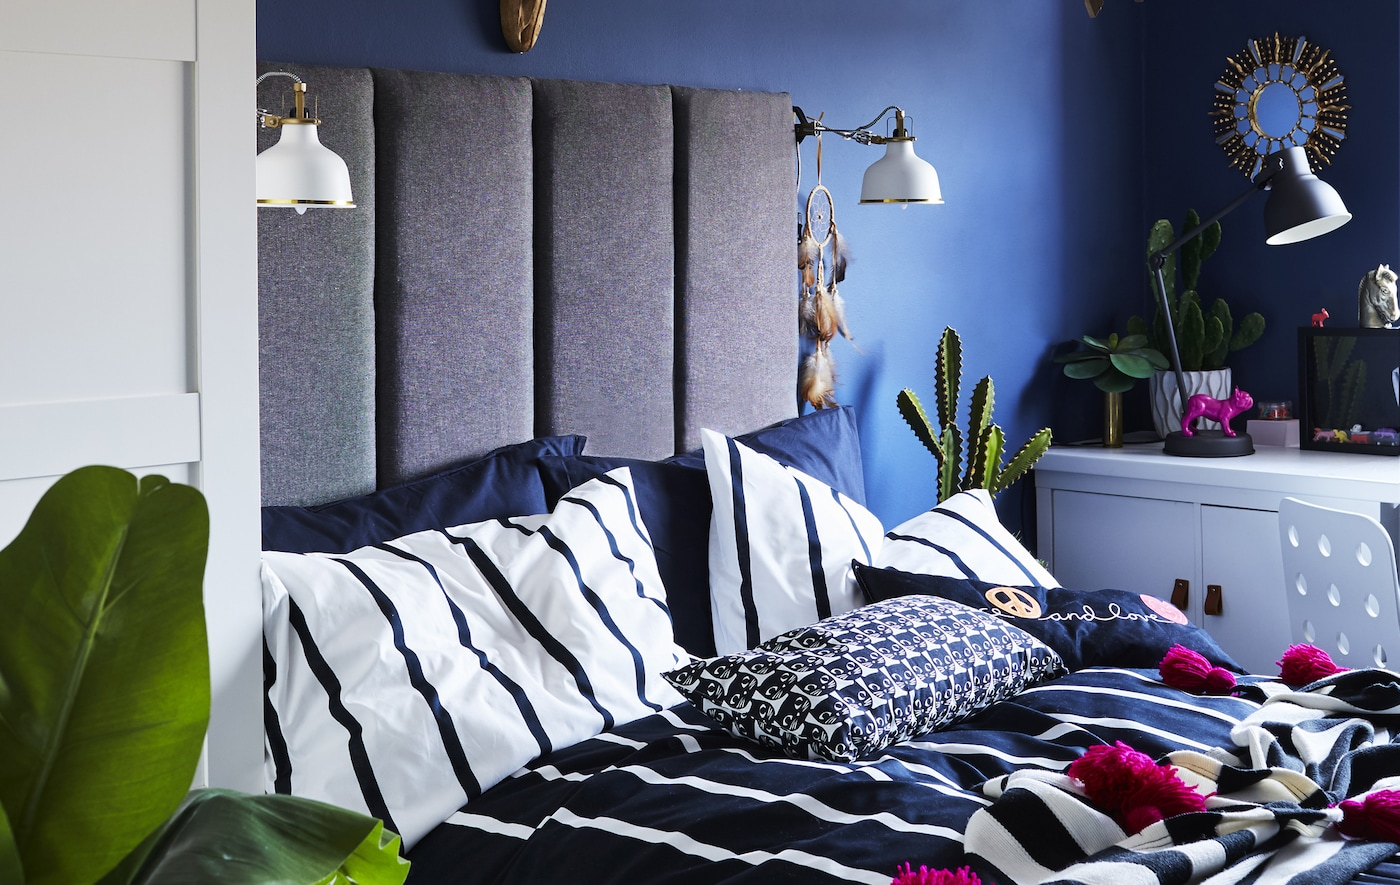 A kid's room with blue walls and monochrome bedding.